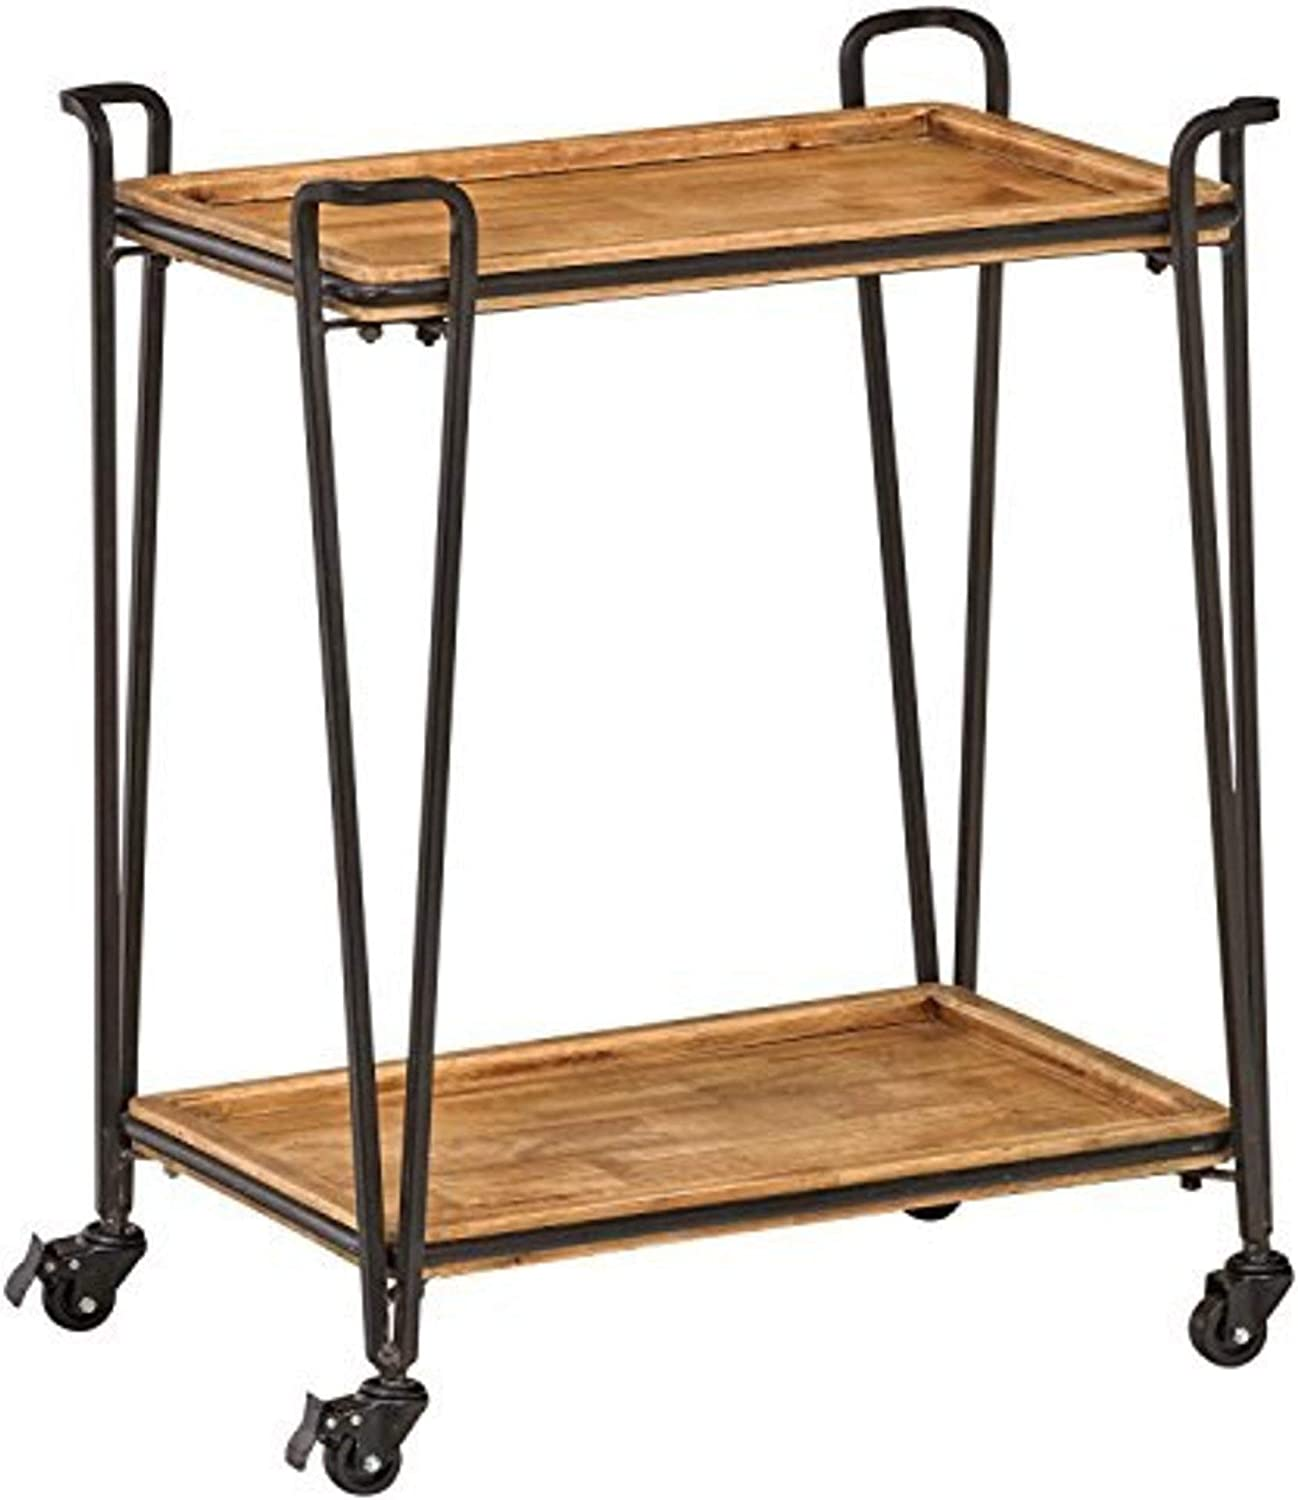 Amazon Brand – Rivet Industrial Modern 4-Post Rolling Bar Cart Table with Wheels, 25.2